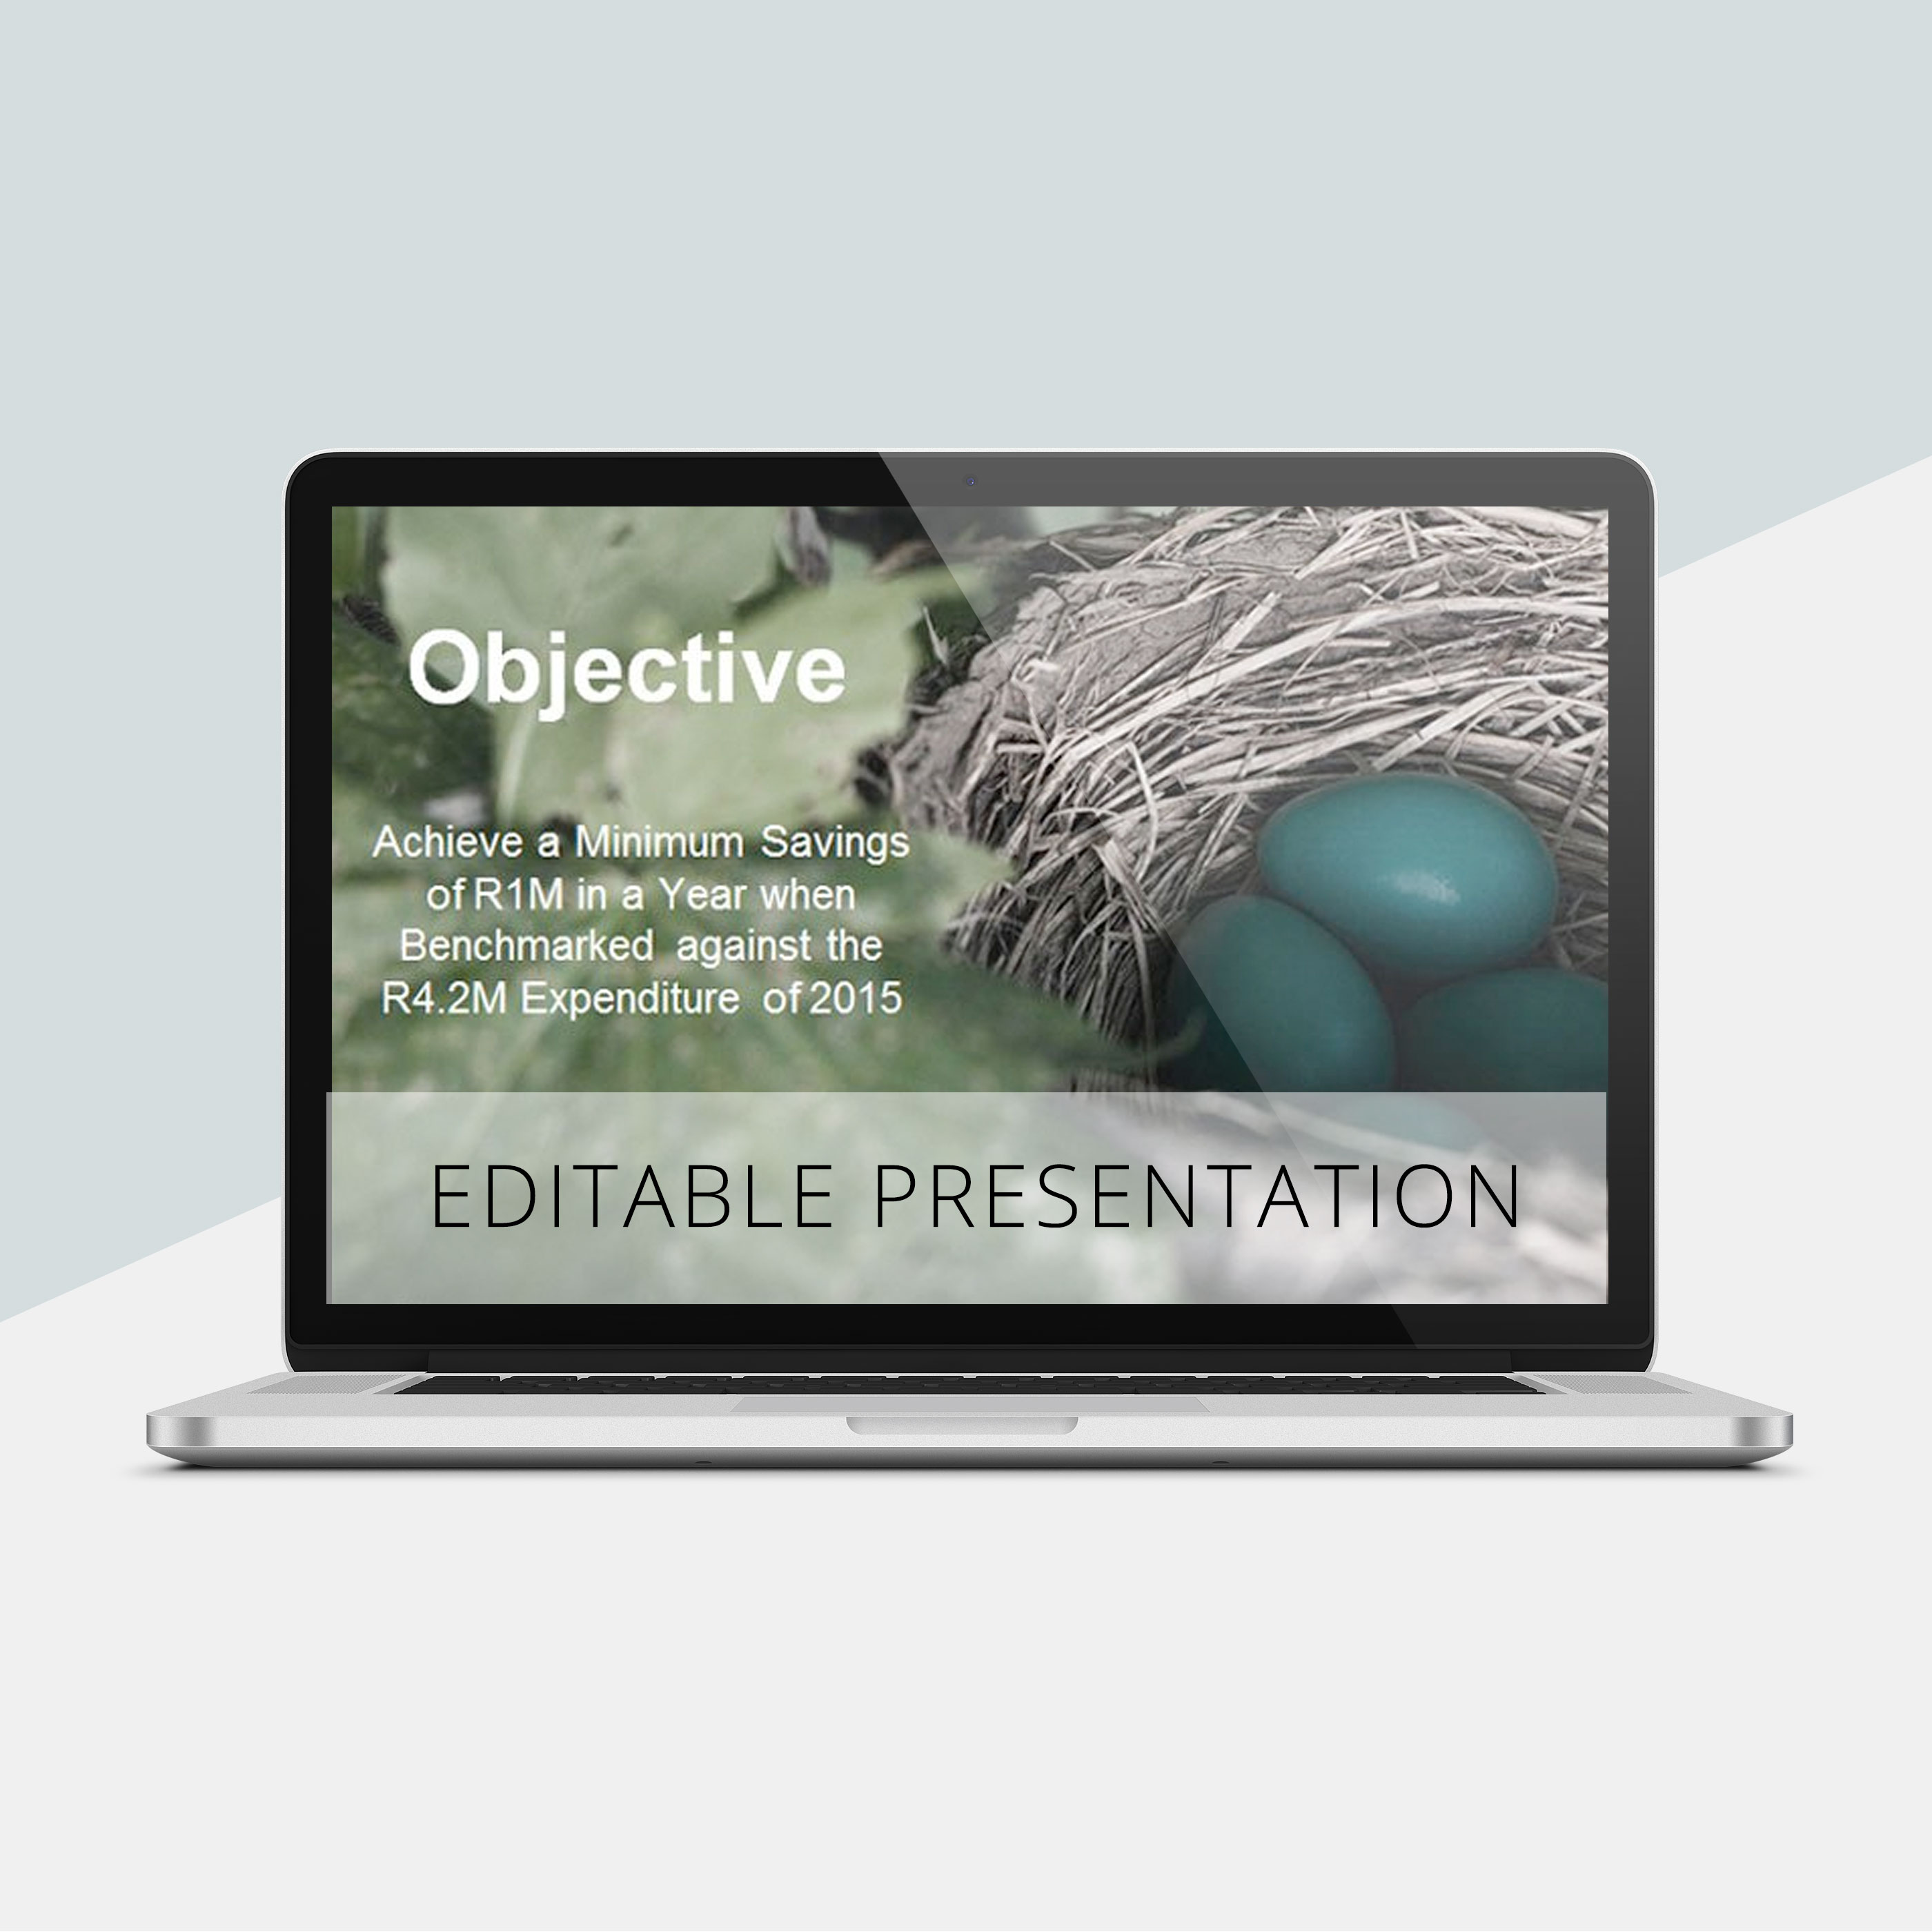 EDITABLE-PRESENTATION-DESIGN-THUMB